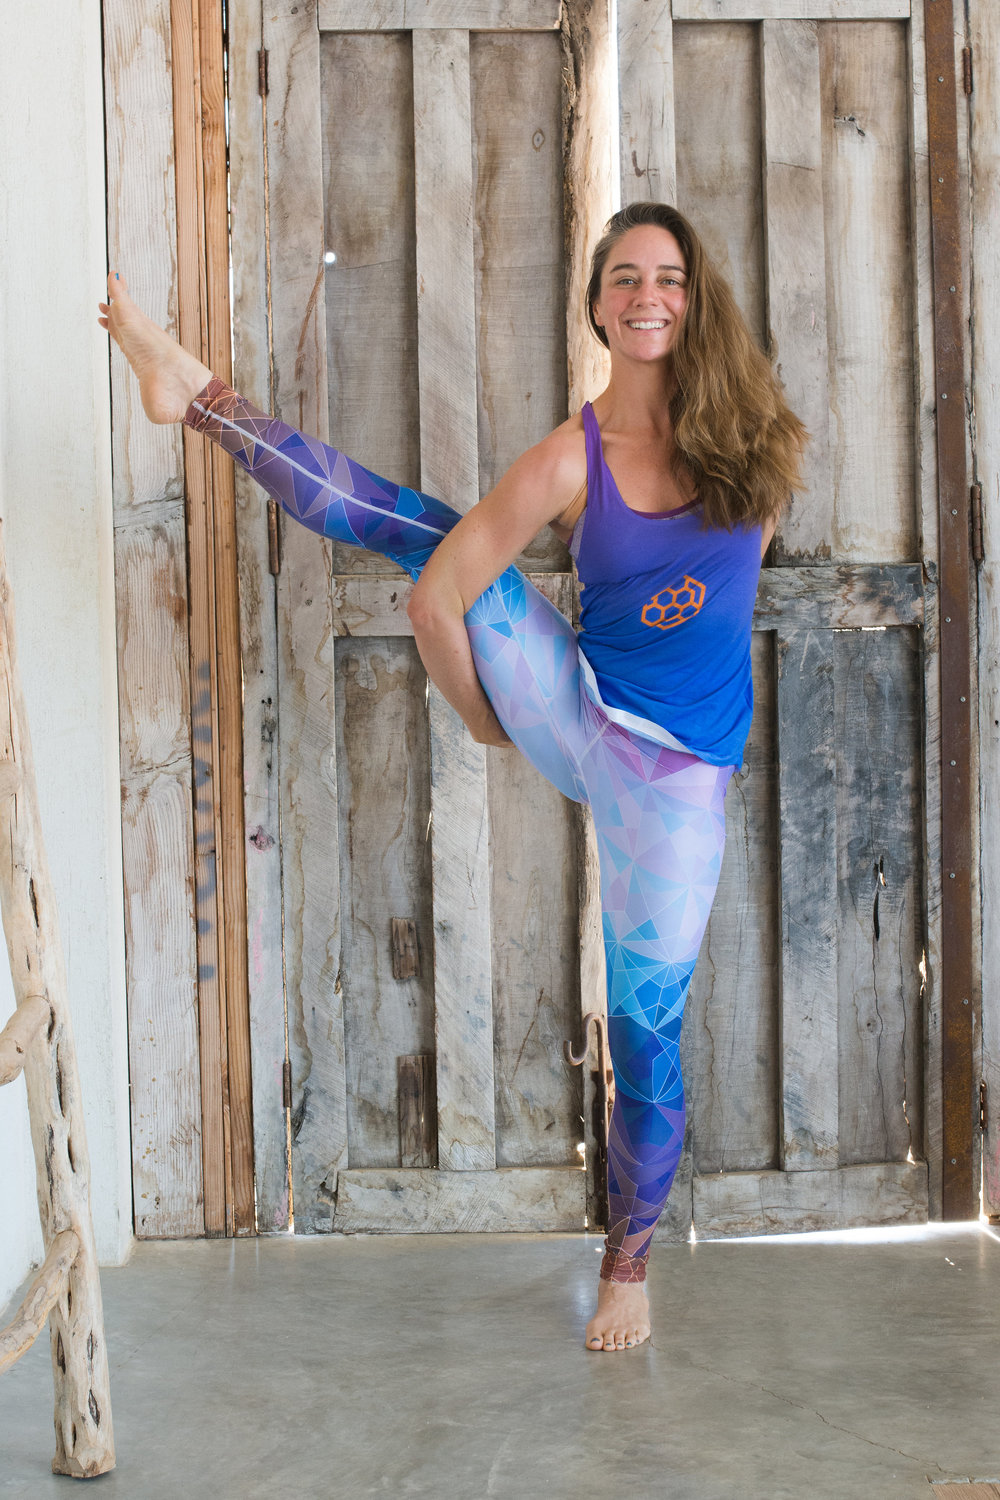 About Casie: - Casie has been practicing yoga and teaching in some capacity for nearly half her life. After graduating from college, Casie hit the ground running as a school teacher and coach, and found yoga at the same time. She had been searching for a healthy, sustainable, non-competitive form of exercise that would balance her years as a collegiate track and field athlete. When she left traditional classroom teaching to help her husband open two restaurants, Apis and Pizzeria Sorellina, Casie discovered she enjoyed being a businesswoman (but NOT the restaurant life!). Enter Nectar Flow Yoga.Casie founded Nectar Flow Yoga in 2016 to serve the small community of Spicewood, Texas with an approachable and friendly space in which to practice mindfulness and healthy movement. Since that time, Nectar Flow has grown to a full-scale studio with a variety of dynamic and experienced teachers and classes. For Casie, this is truly a